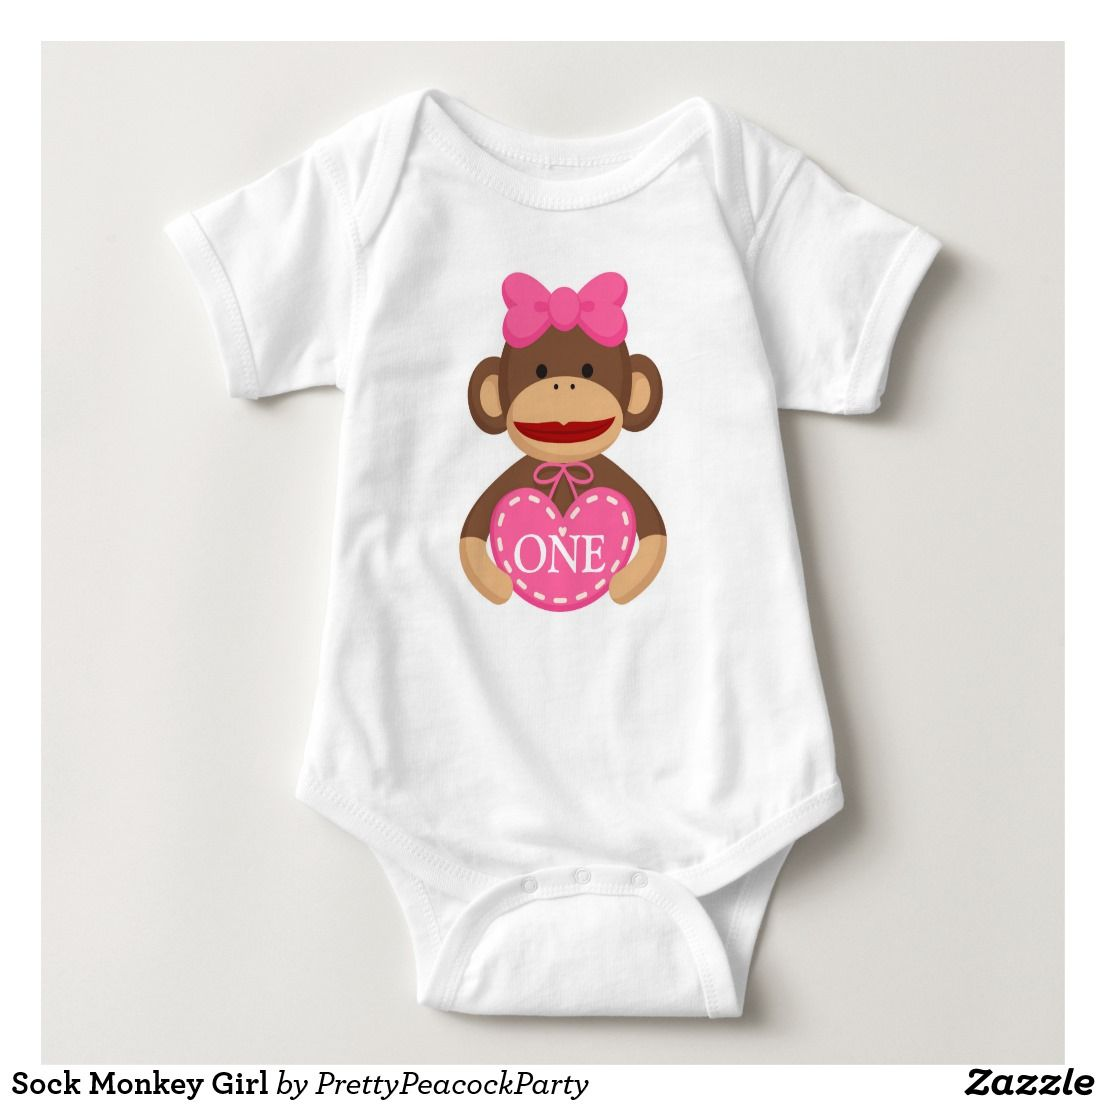 Sock Monkey Girl Baby Bodysuit | Zazzle.com #sockmoneky